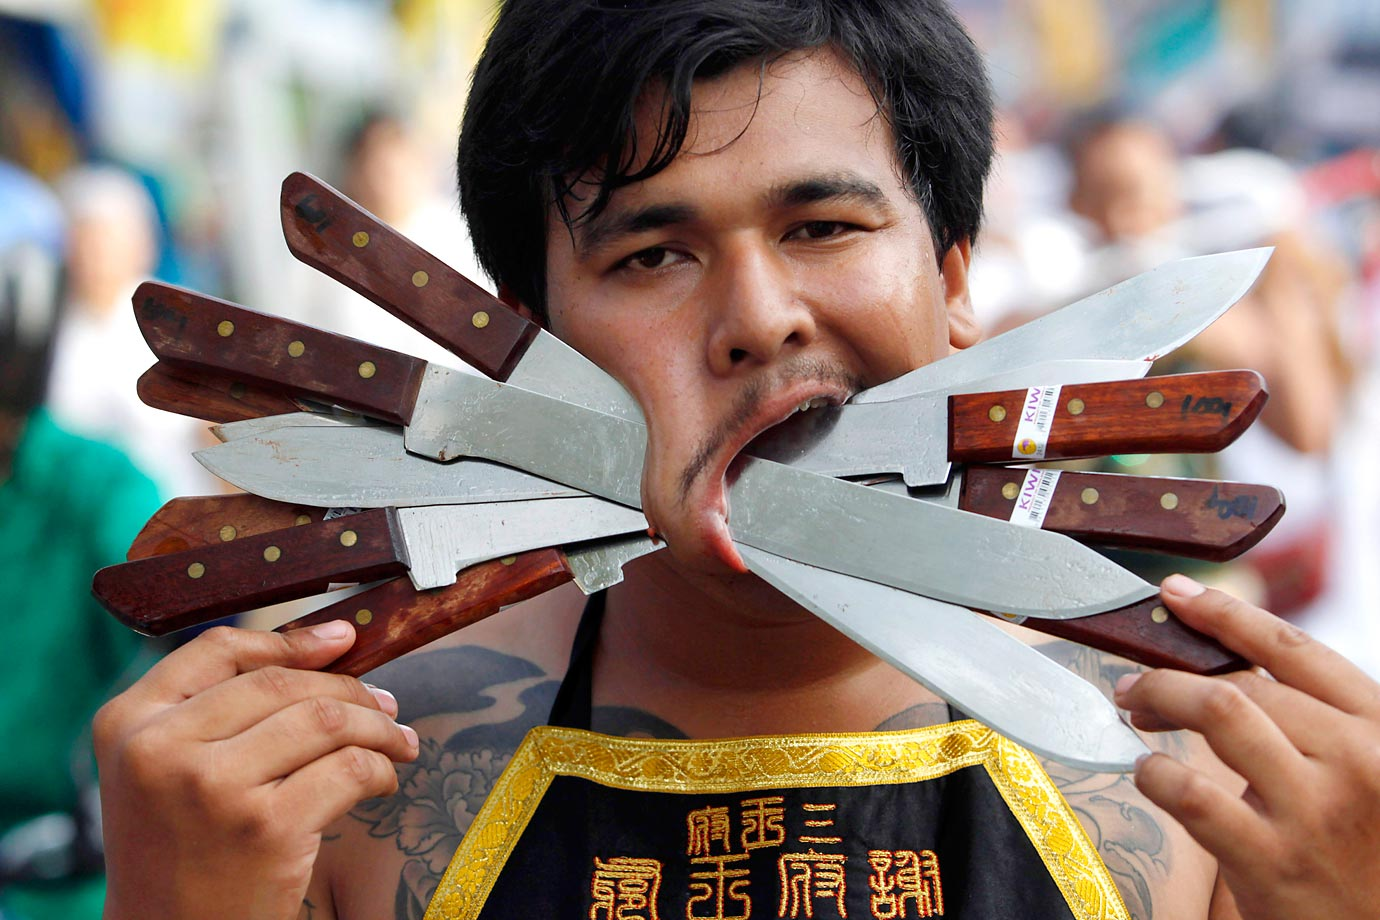 A vegetarian festival devotee parades through the streets in Phuket, Thailand. Participants in the festival perform acts of body piercing as a means of shifting evil spirits from individuals onto themselves and bring the community good luck.